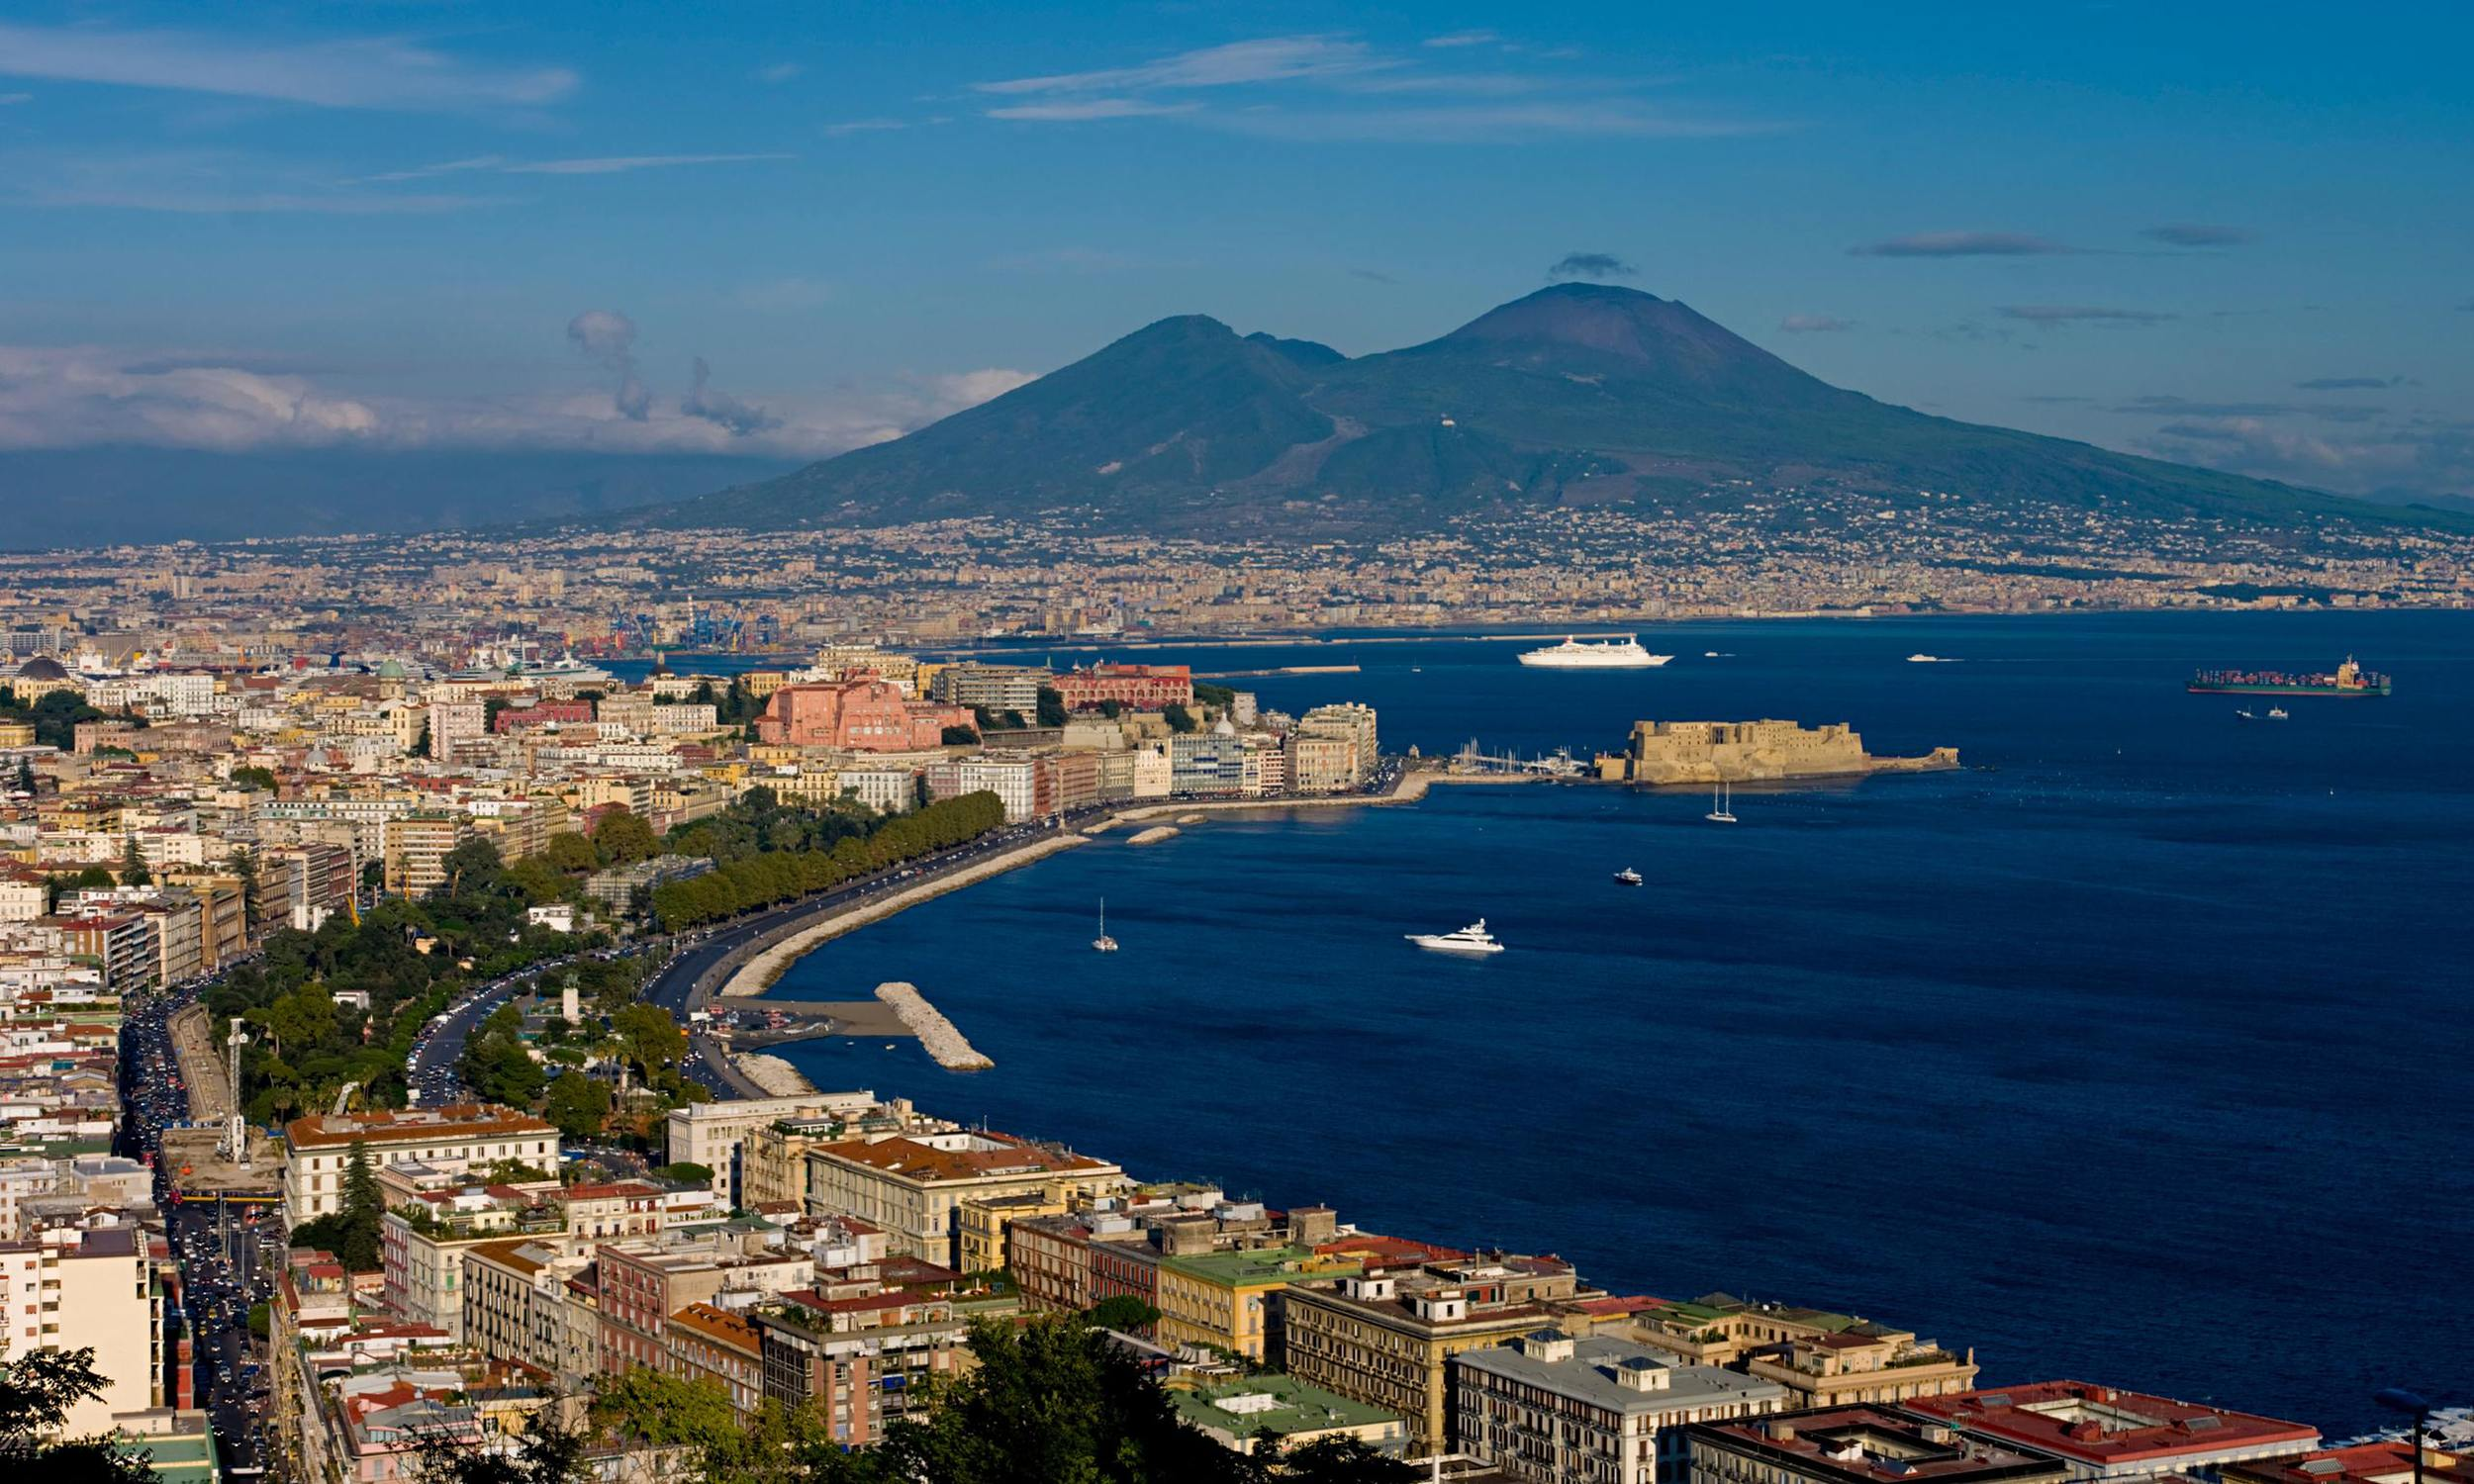 NAPLES   Naples is the biggest city in Southern Italy and it is the capital in the region of Campania. The population of the city is about 1 million. The city is not far away from the volcano Vesuvius. Naples is an amazing city and it offers many great things.